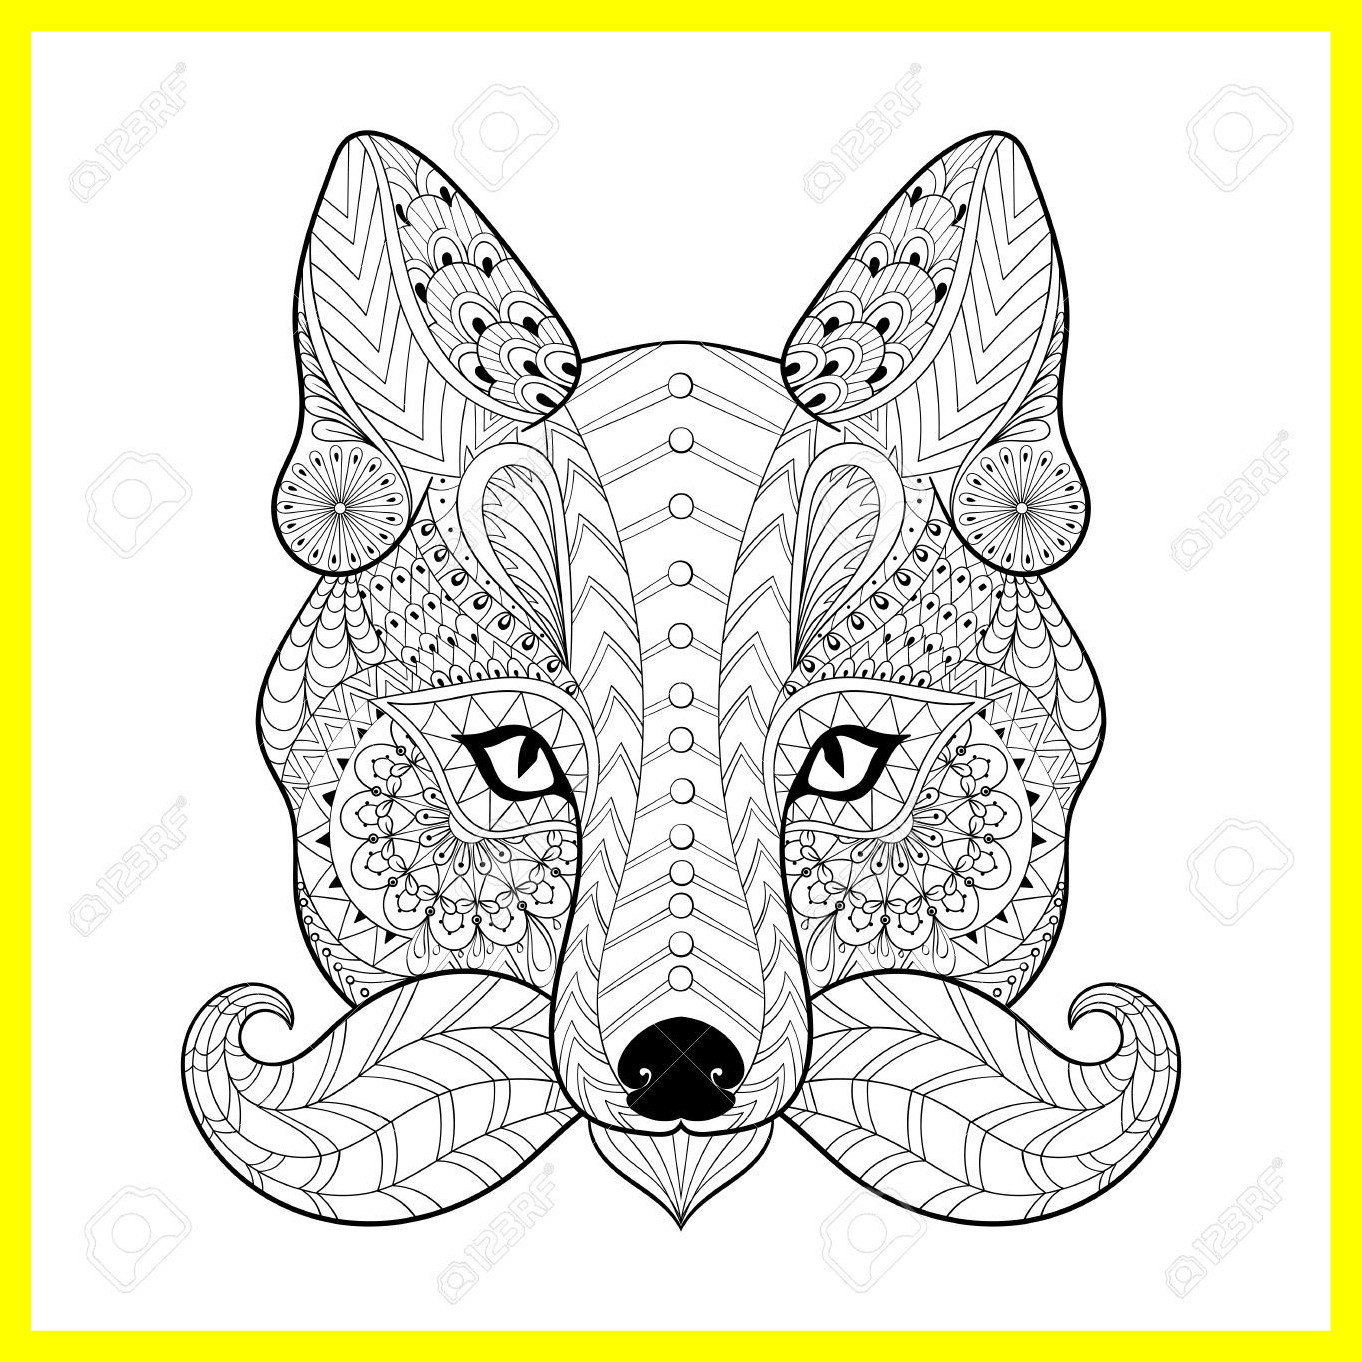 1362x1362 Fascinating Hand Drawn Tribal Fox Face For Adult Anti Stress